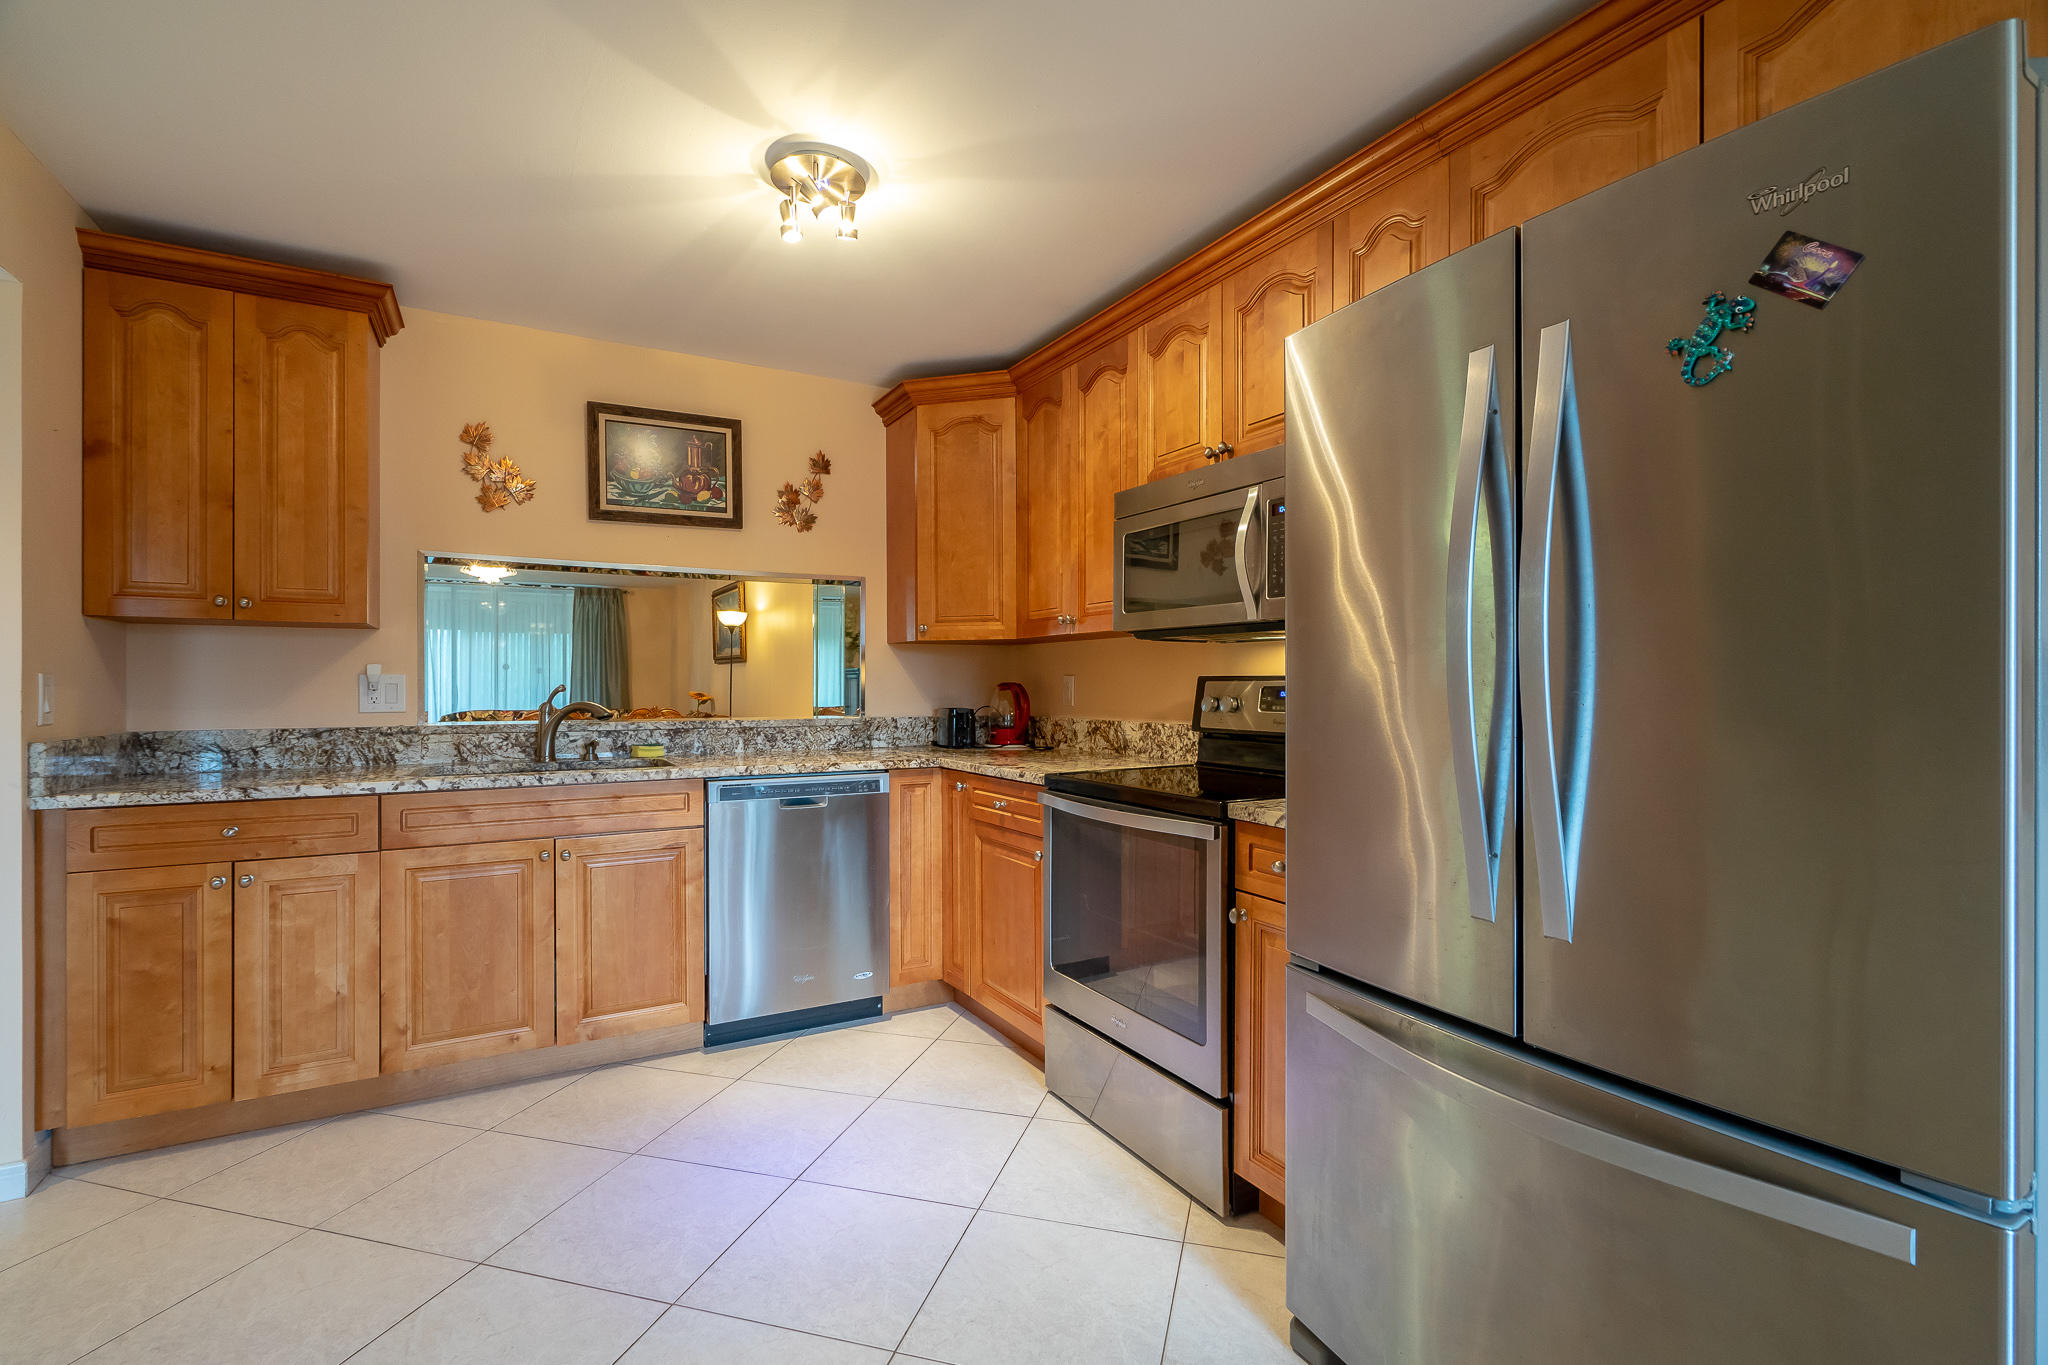 5574 Witney Drive 102 Delray Beach, FL 33484 small photo 3